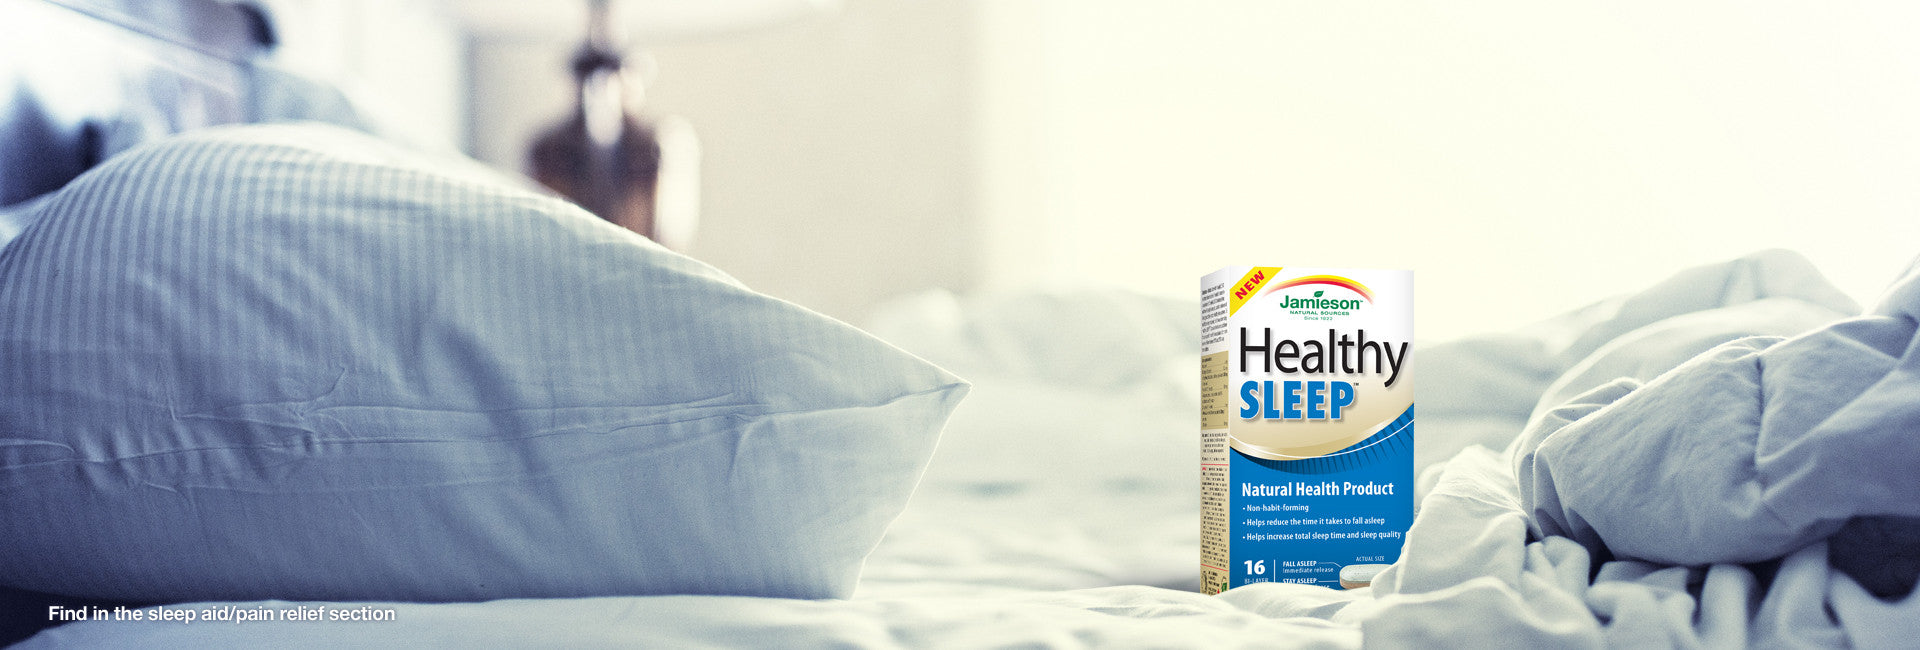 Introducing Jamieson Healthy SLEEP™